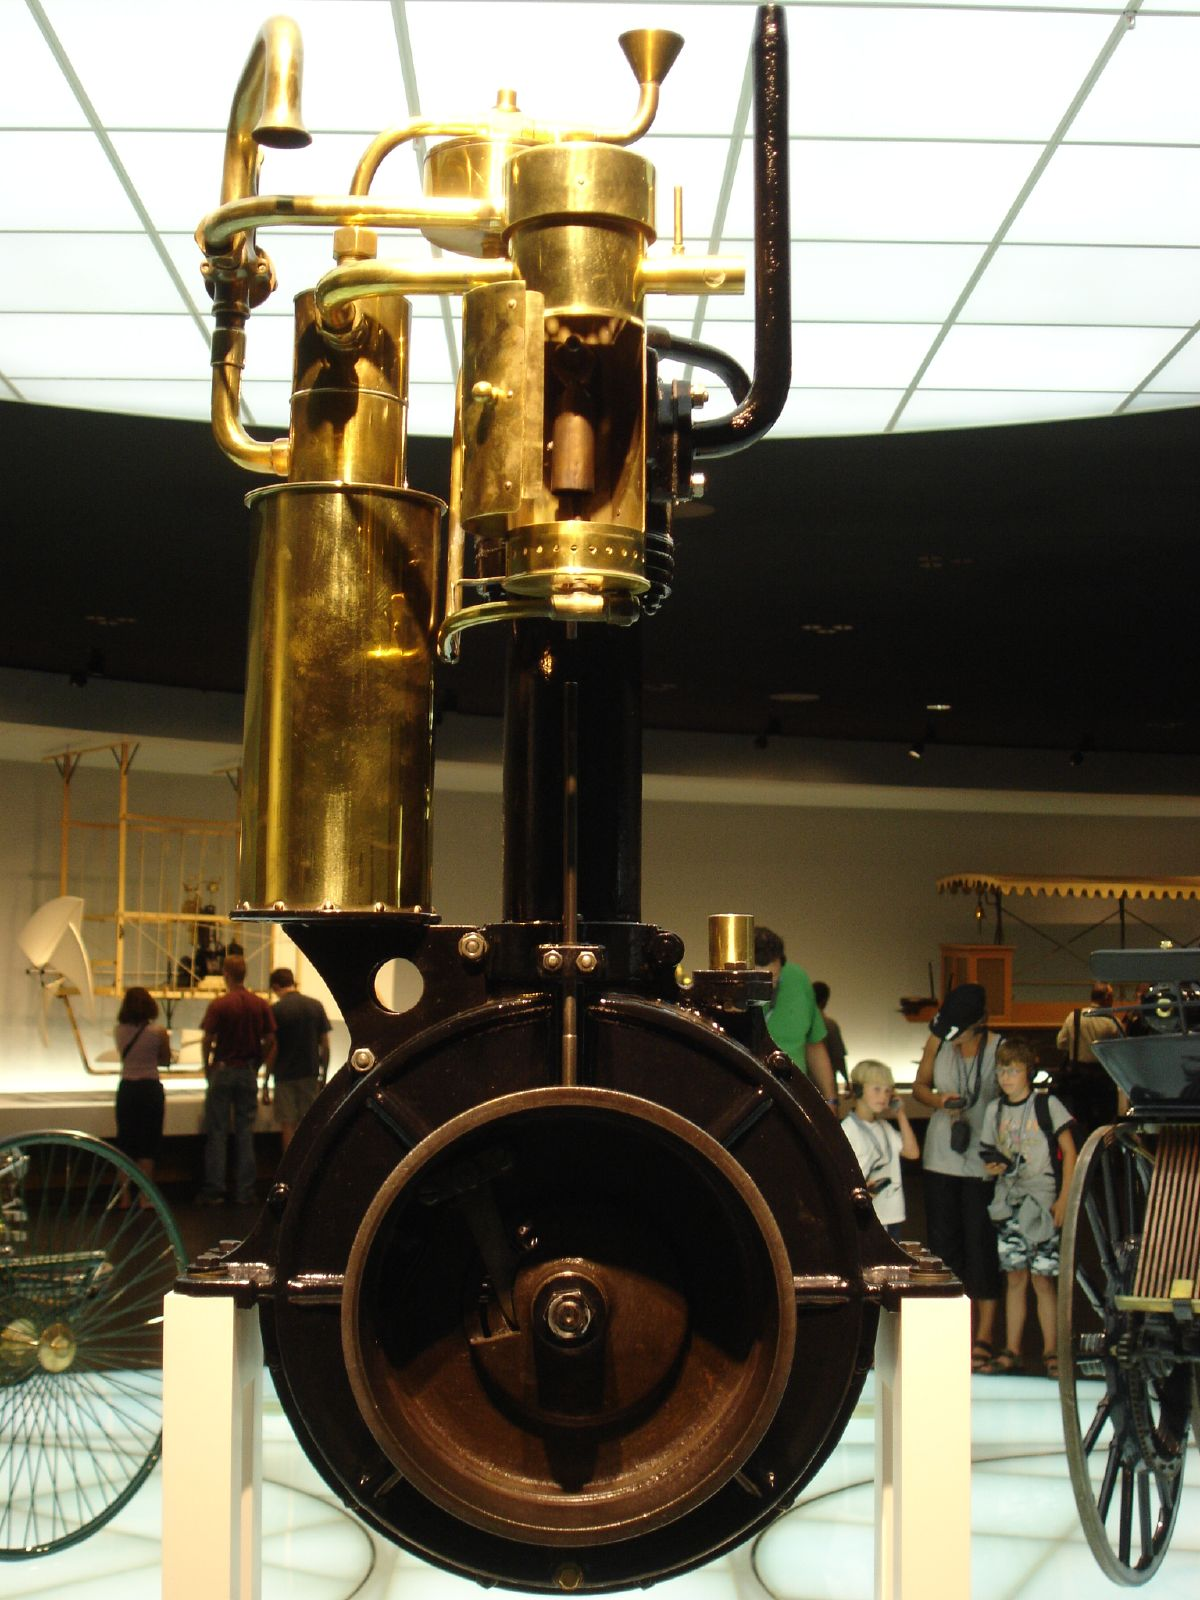 Daimler Maybach Grandfather Clock Engine at Maybach is Gone. What's Left Behind?